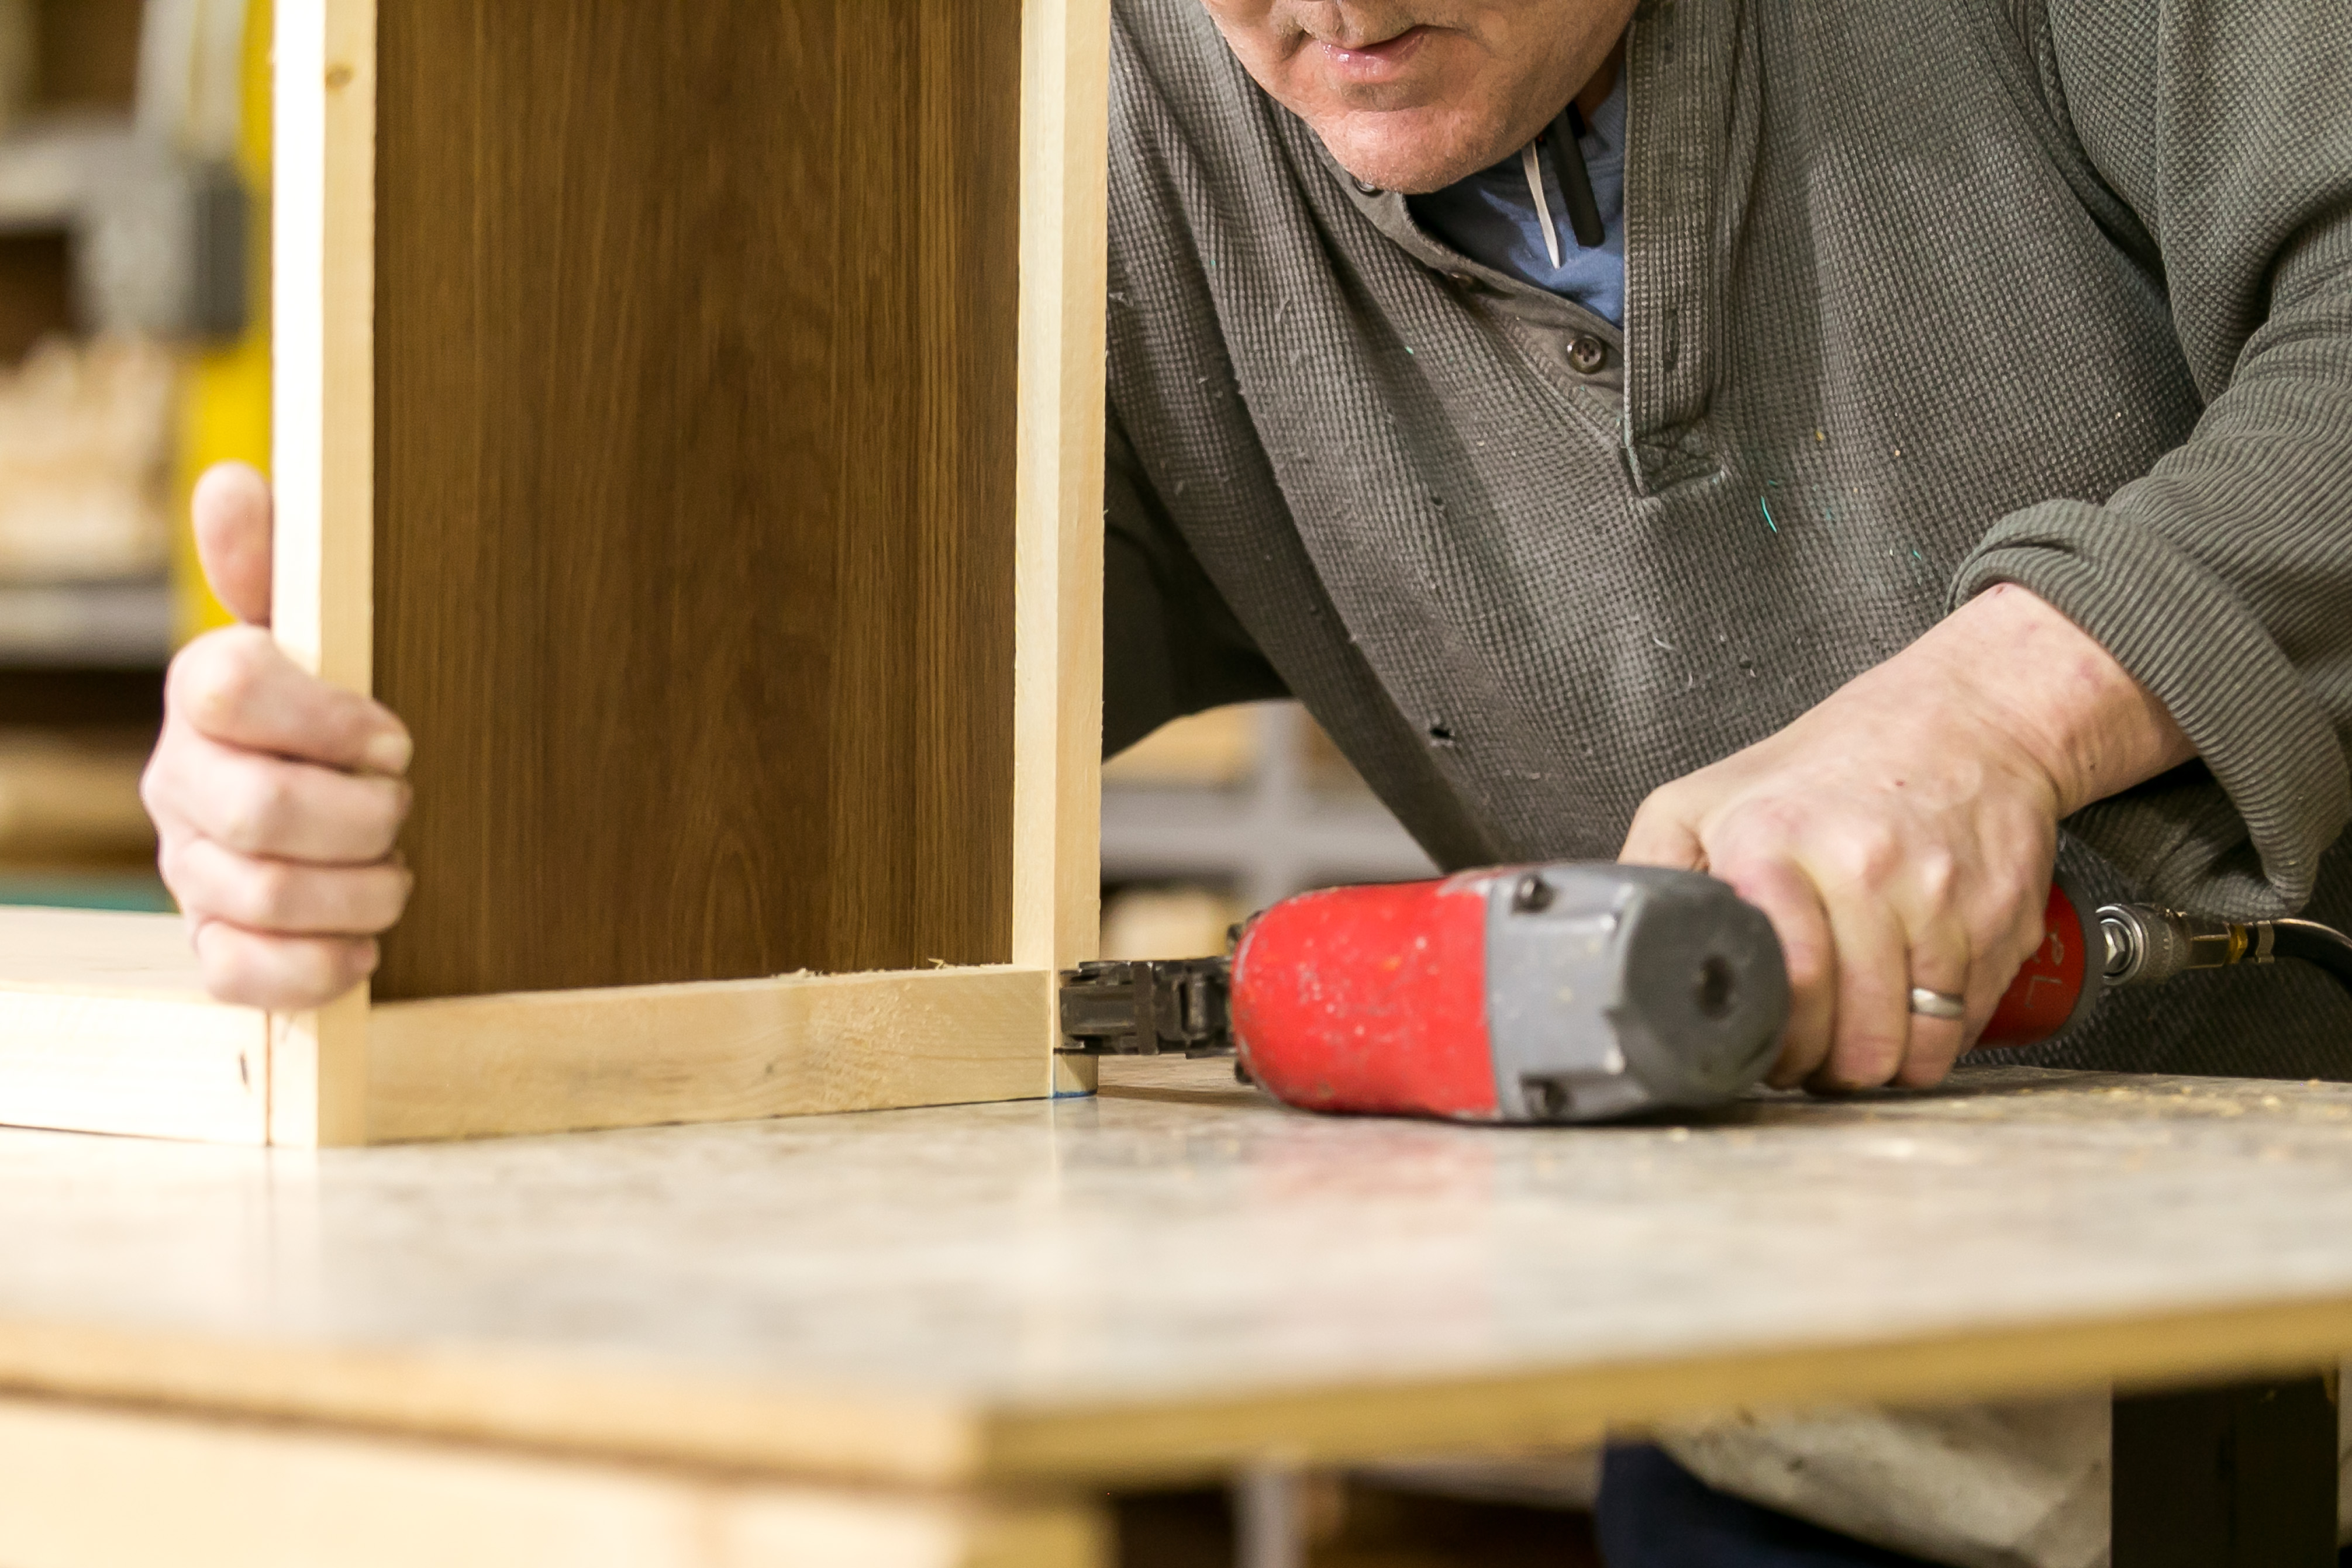 Team member works on assembling wood cabinets for a manufactured home.